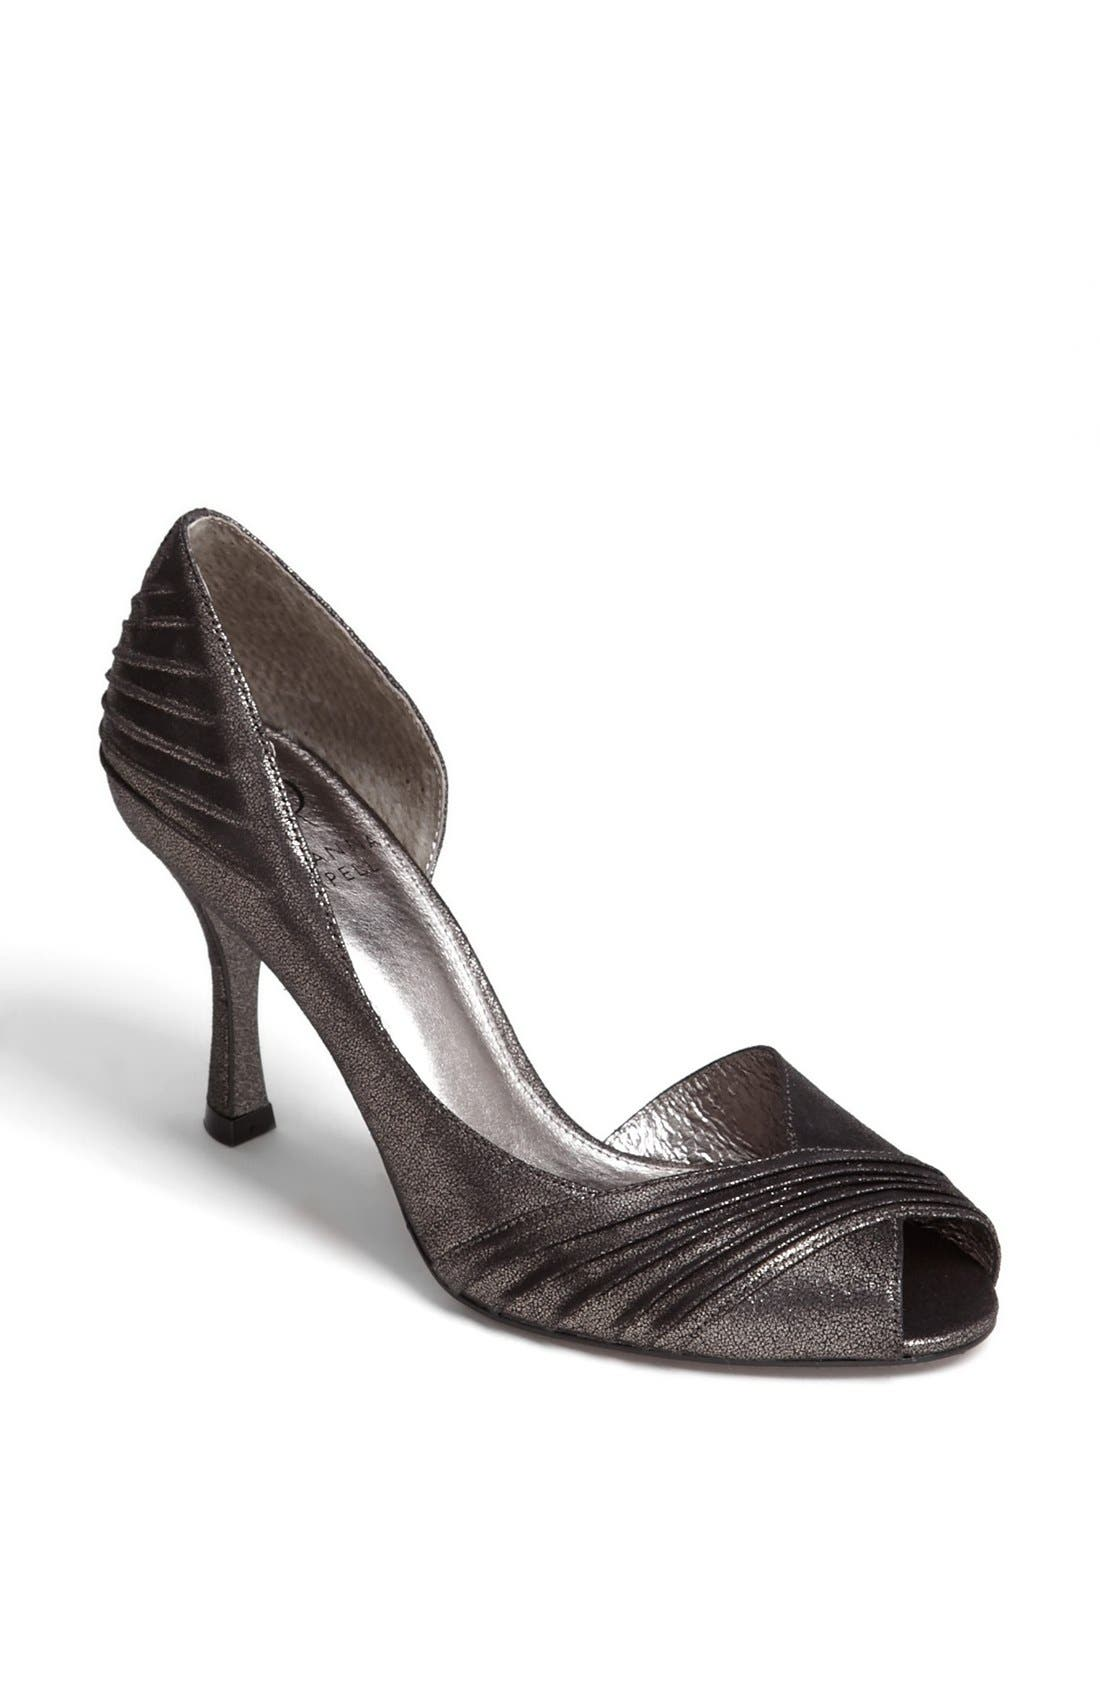 Alternate Image 1 Selected - Adrianna Papell 'Fritz' Pump (Online Only)